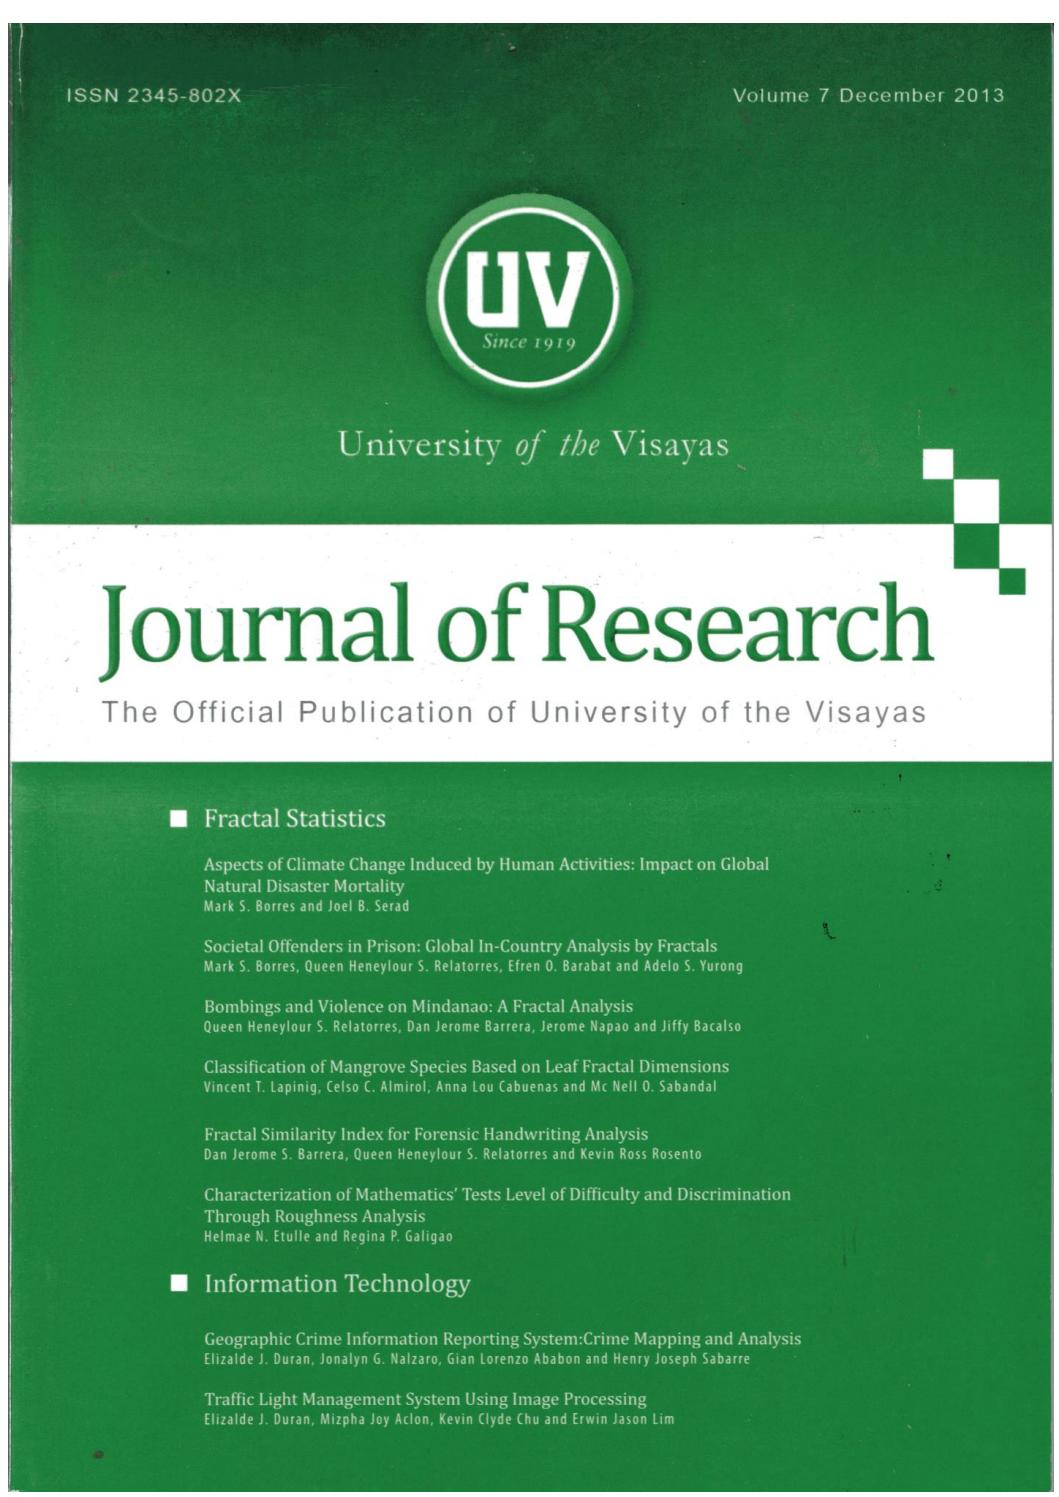 Uv journal of research vol7 december 2013 by university of the uv journal of research vol7 december 2013 by university of the visayas center for research and development issuu biocorpaavc Choice Image